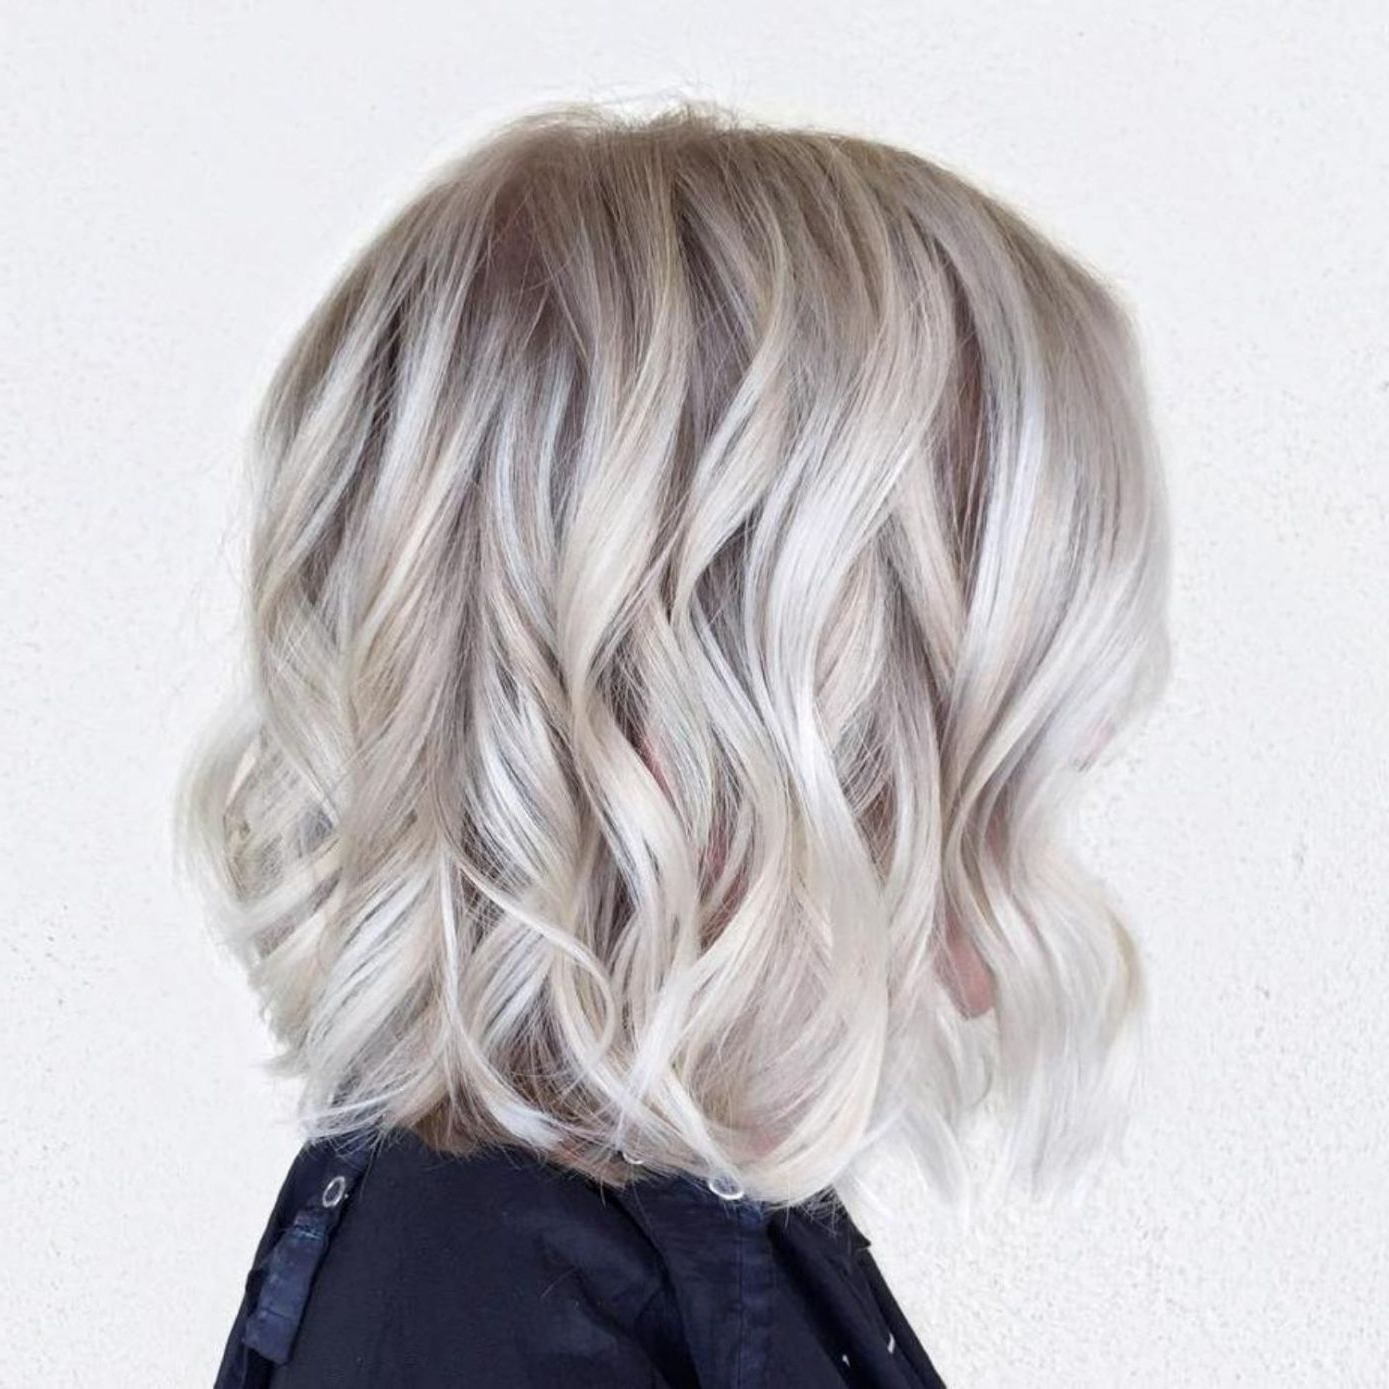 70 Winning Looks With Bob Haircuts For Fine Hair In 2018 | Hair With Regard To White Blonde Curly Layered Bob Hairstyles (Gallery 10 of 25)